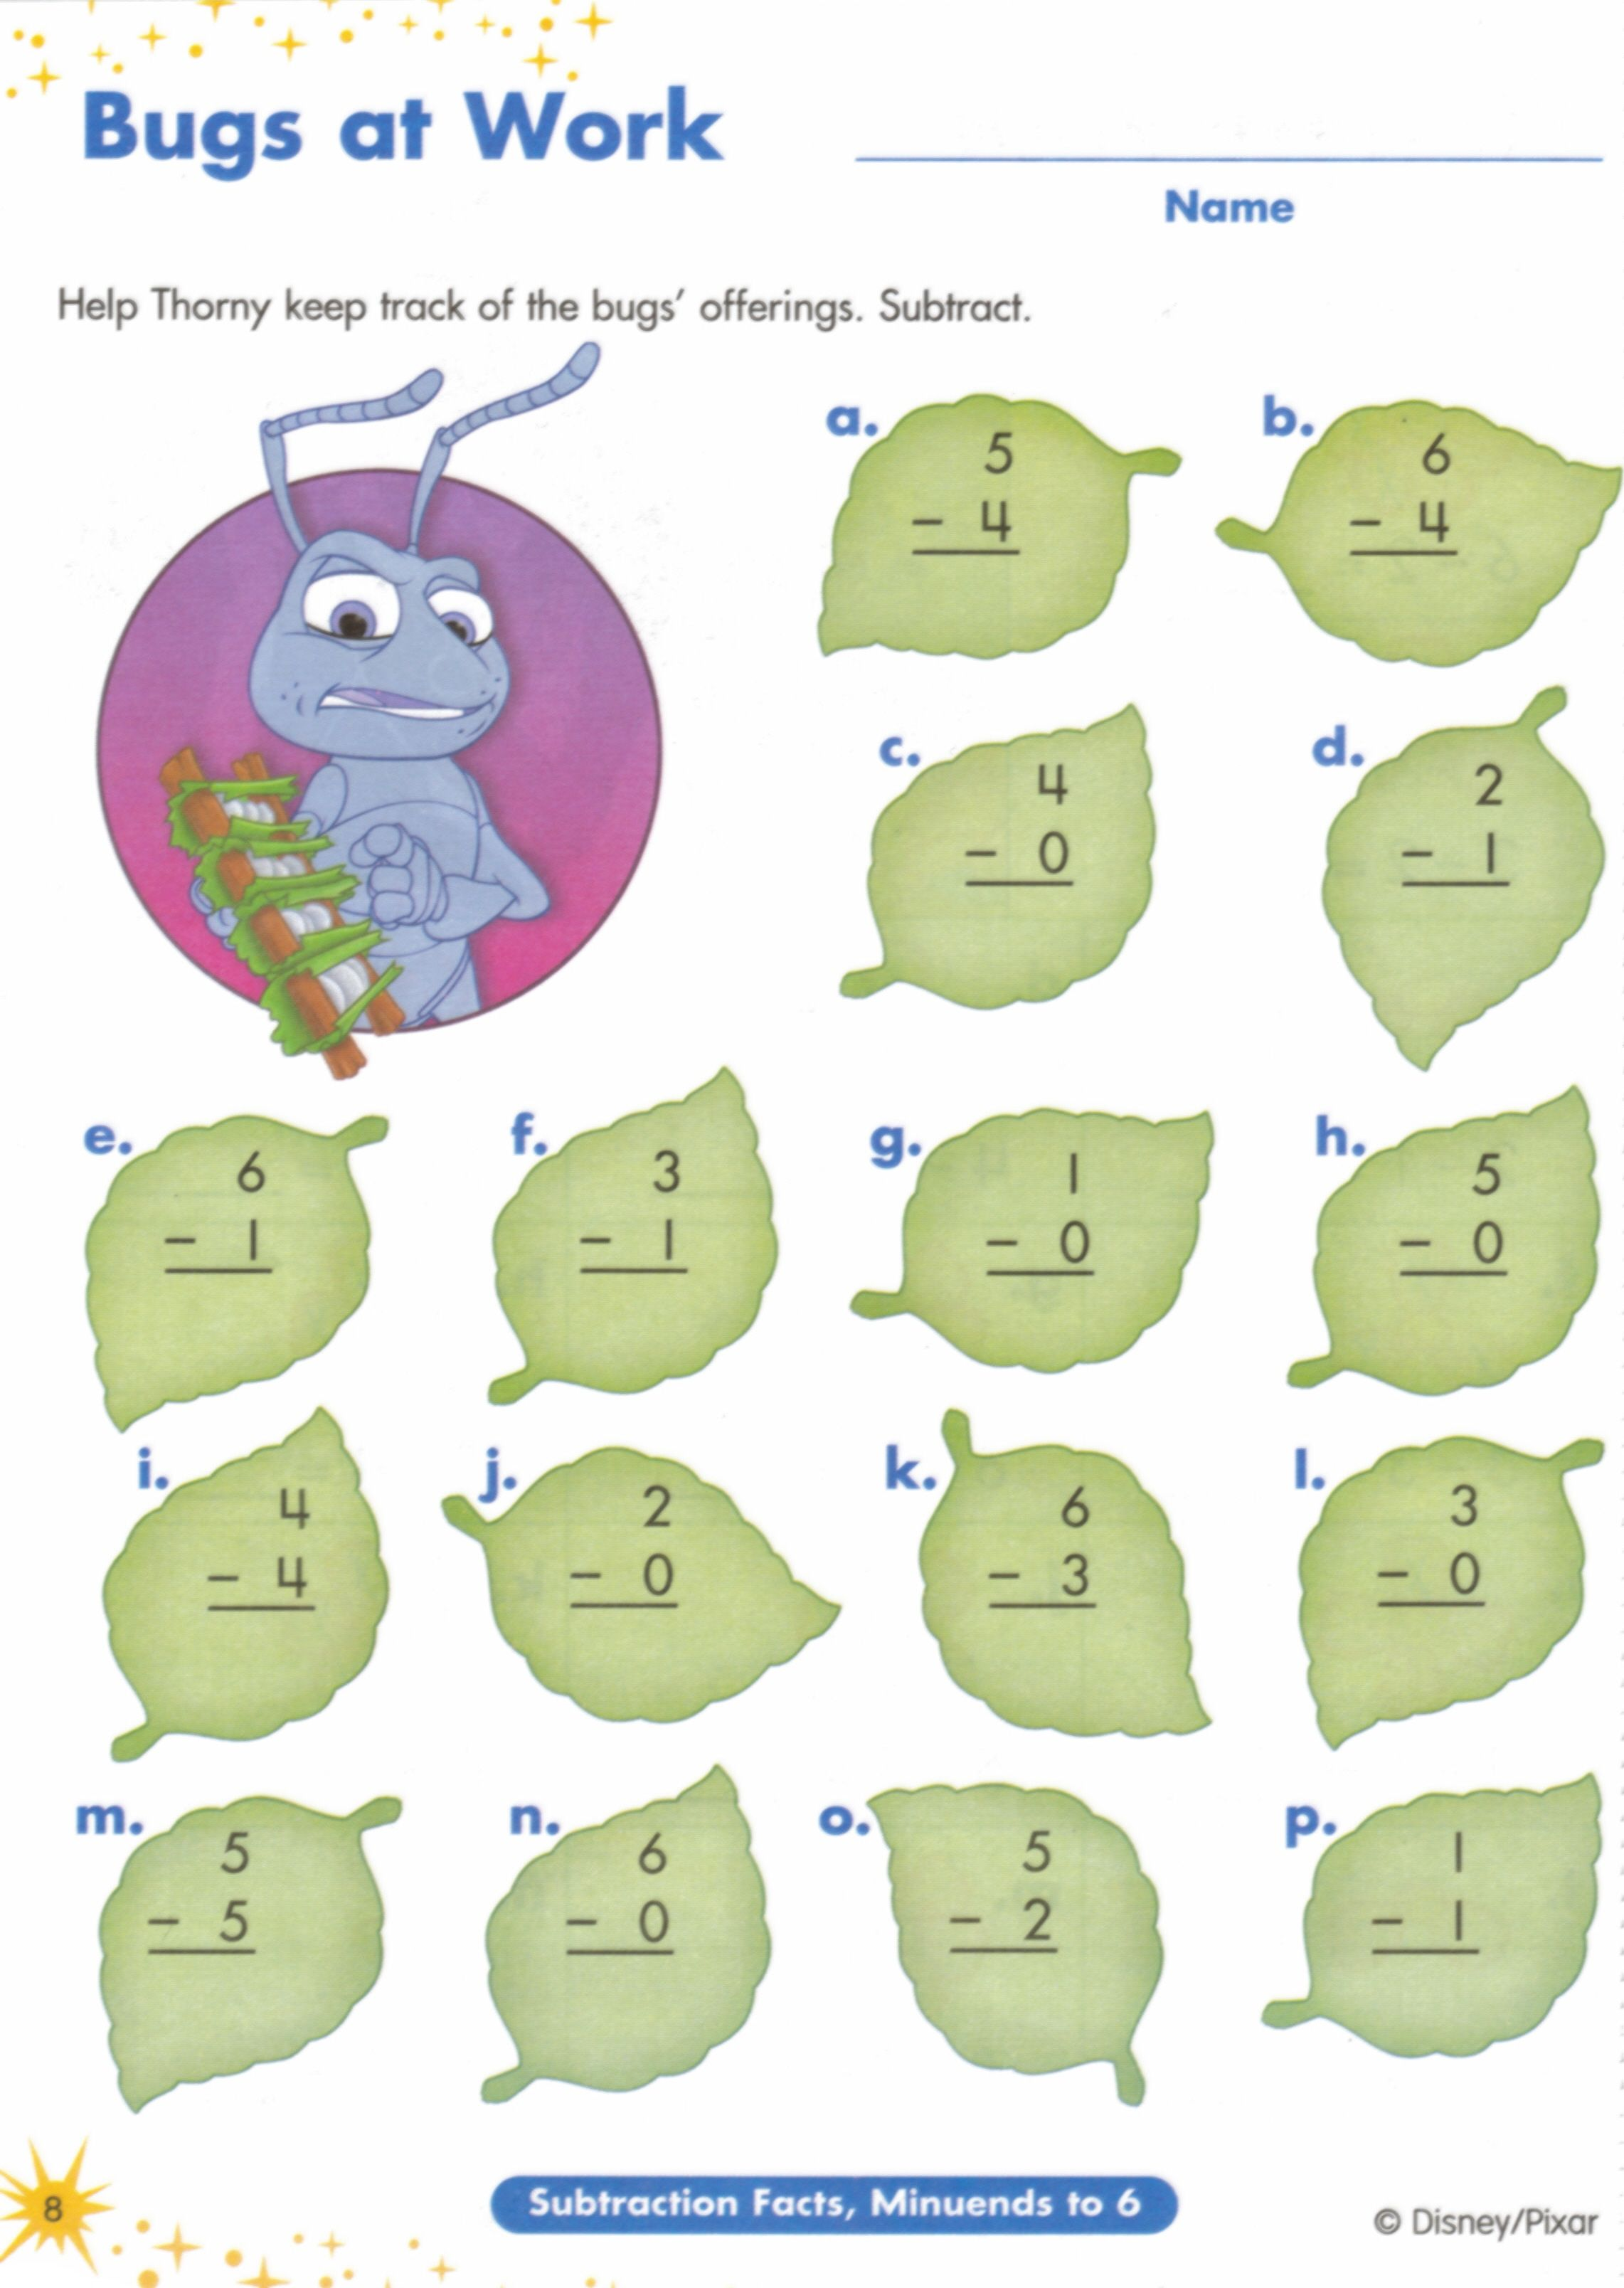 Weirdmailus  Unique  Images About Worksheets On Pinterest  Fun Facts For Kids  With Interesting  Images About Worksheets On Pinterest  Fun Facts For Kids Earth Day Worksheets And Jungles With Agreeable Organ Systems Worksheet Also Multiplication X Worksheets In Addition Muscles Of The Hip Thigh And Leg Worksheet Answers And Multiplication Timed Test Worksheets As Well As Parallel Structure Worksheet With Answers Additionally Paragraph Editing Worksheets Th Grade From Pinterestcom With Weirdmailus  Interesting  Images About Worksheets On Pinterest  Fun Facts For Kids  With Agreeable  Images About Worksheets On Pinterest  Fun Facts For Kids Earth Day Worksheets And Jungles And Unique Organ Systems Worksheet Also Multiplication X Worksheets In Addition Muscles Of The Hip Thigh And Leg Worksheet Answers From Pinterestcom